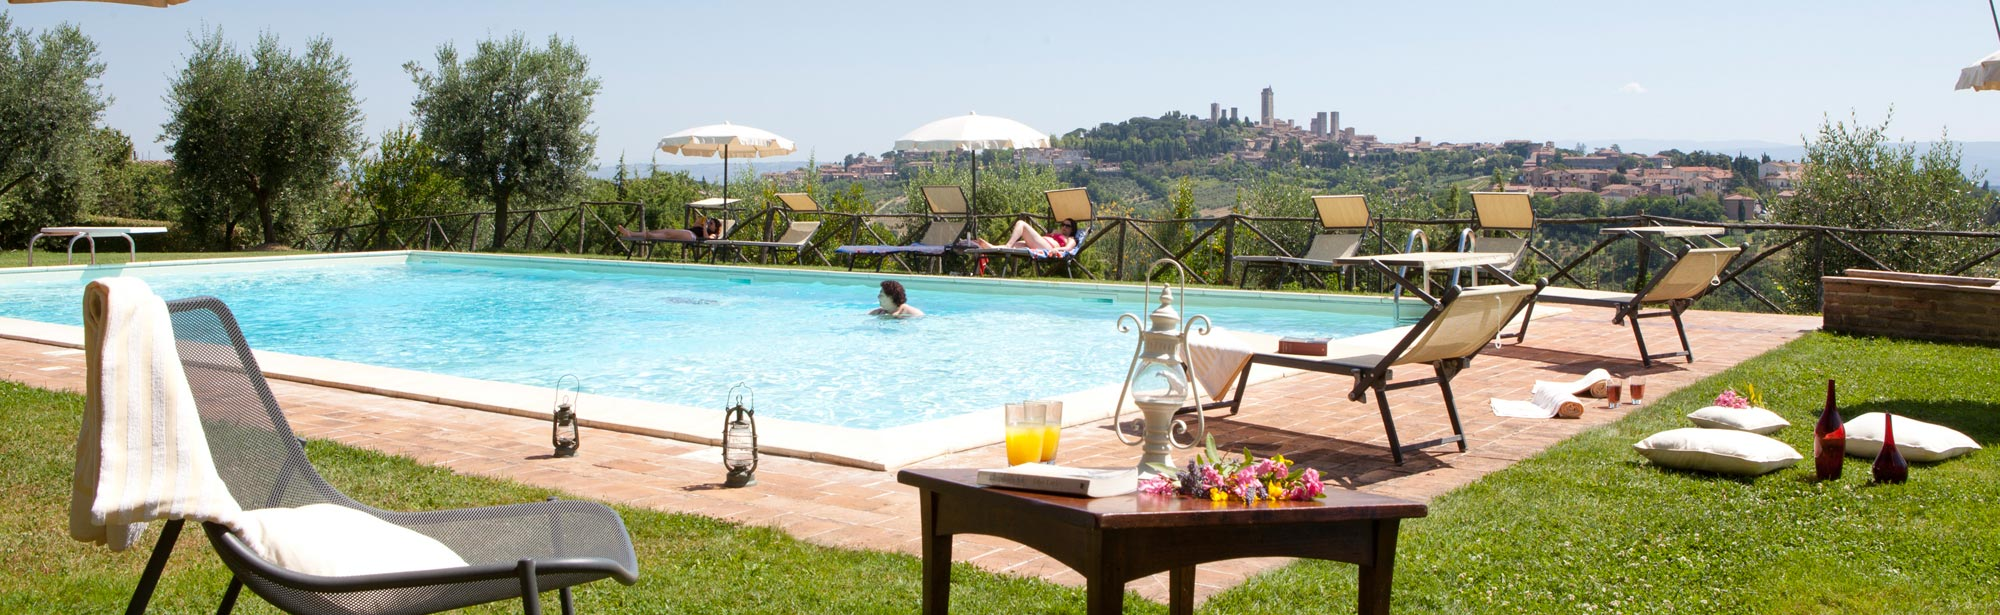 Bed and Breakfast San Gimignano Toskana, mit Schwimmbad, Panoramablick